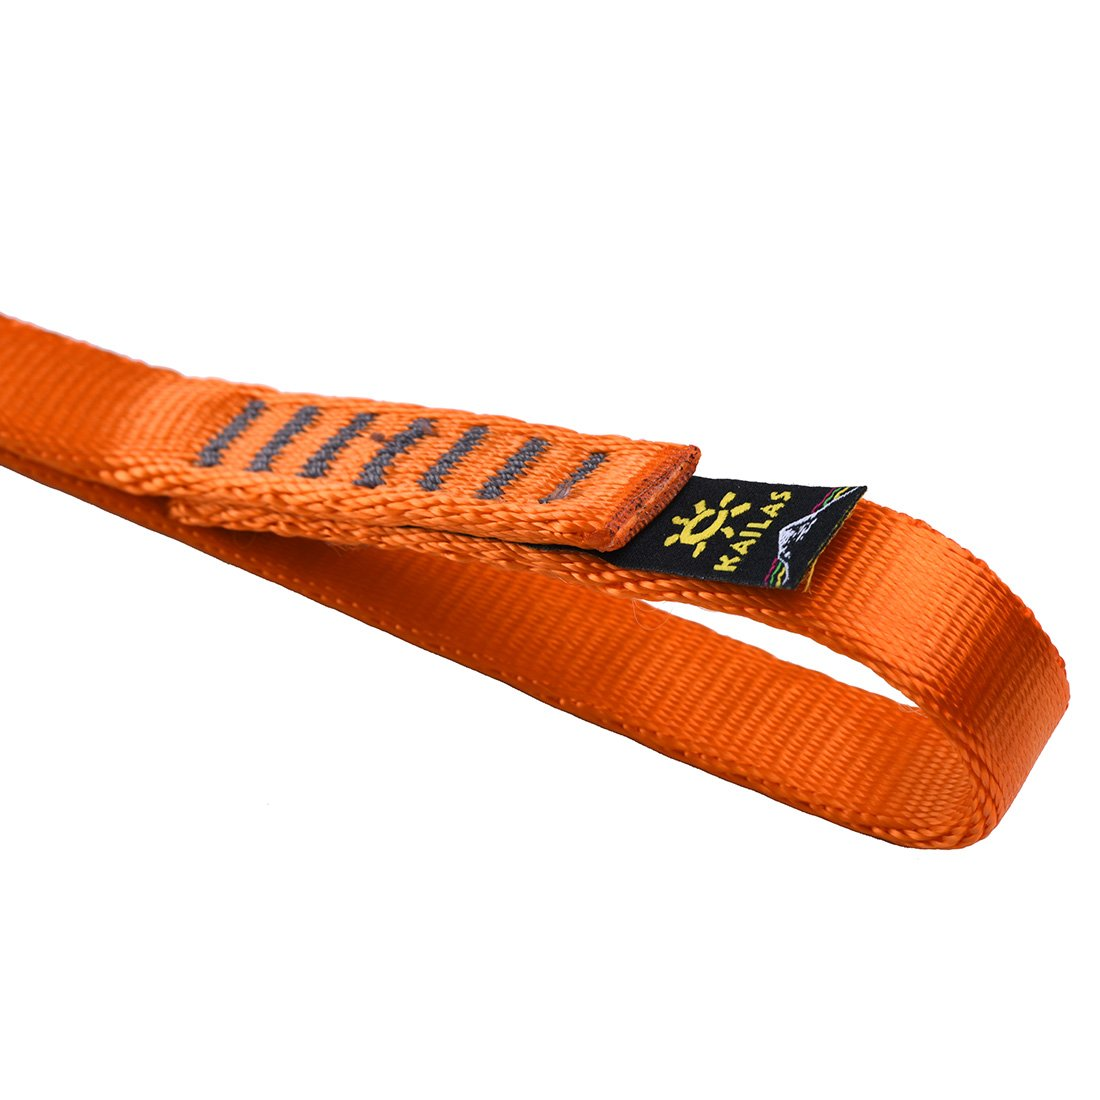 KAILAS Climbing Sling Webbing Nylon Small Slings and Runners Rope Endless Rescue Loop Ascender CE Certified 60cm 80cm 120cm